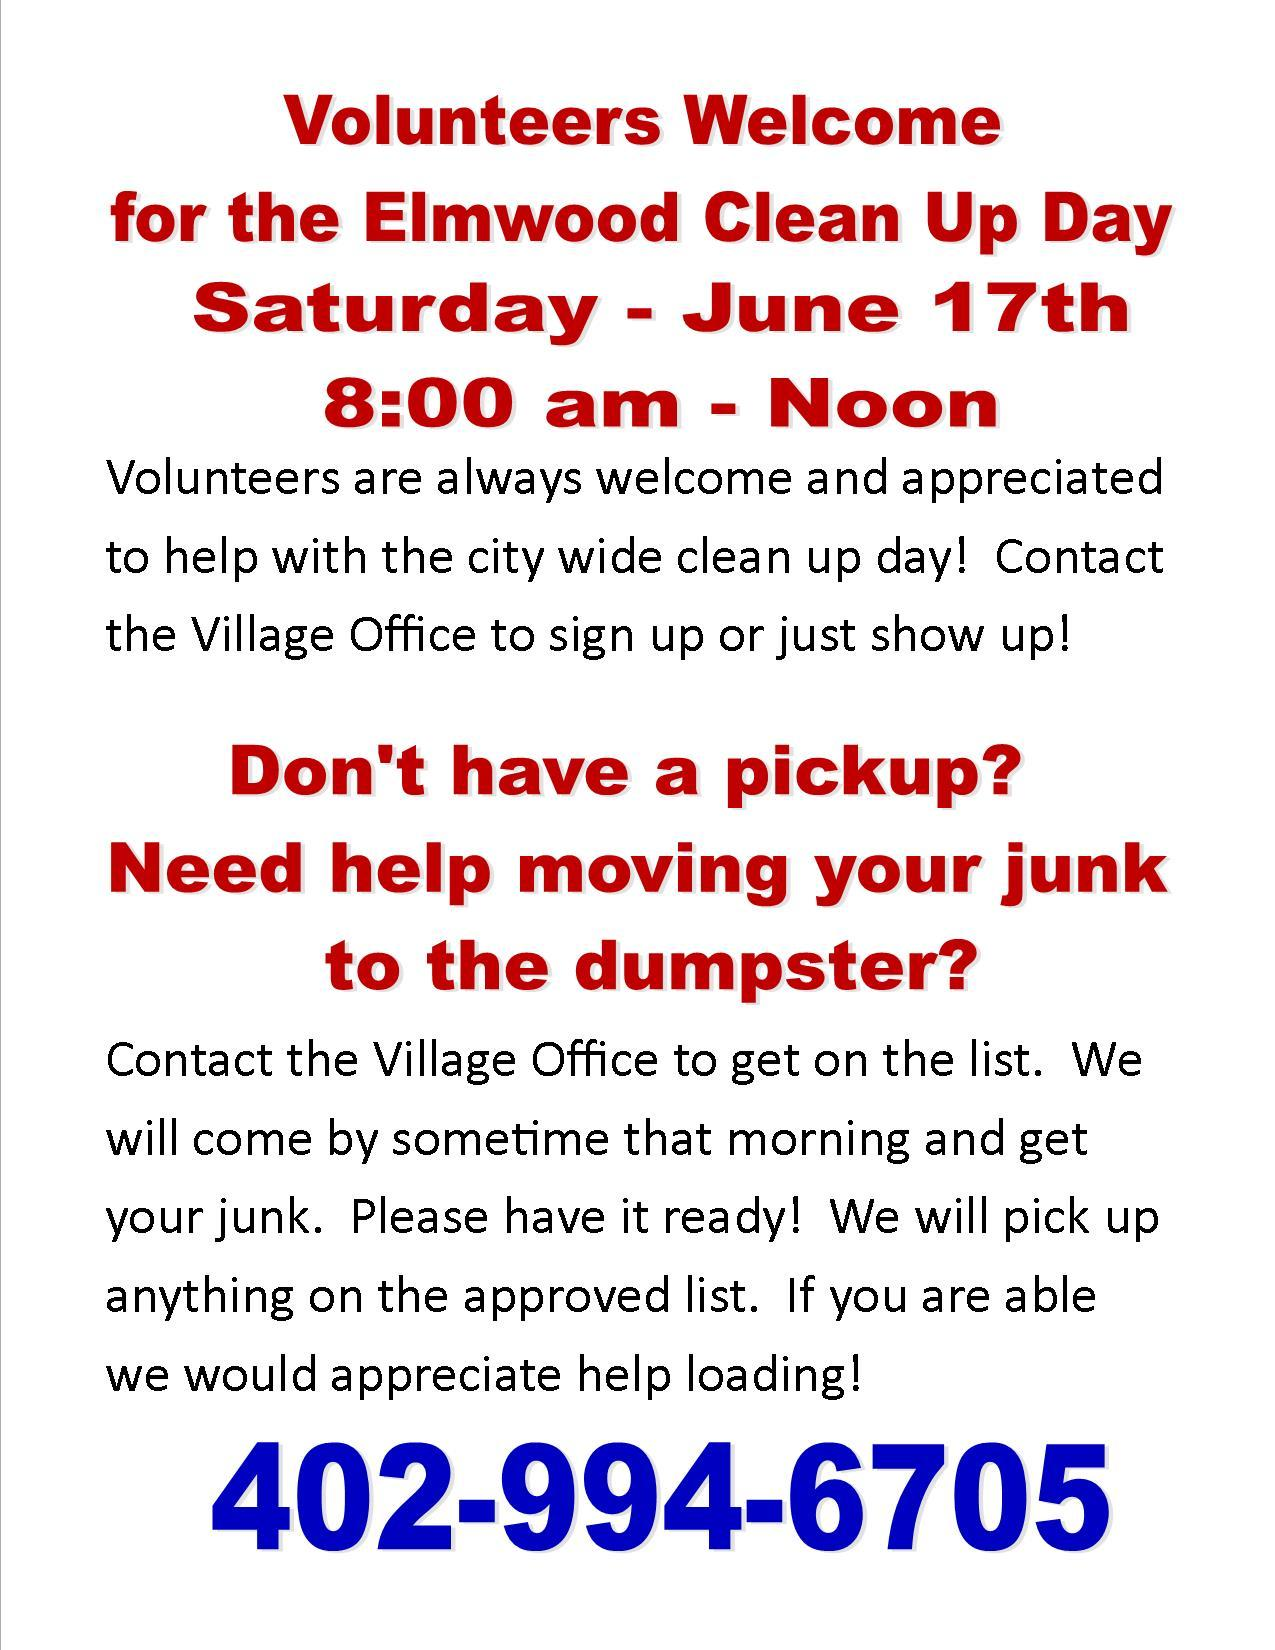 Clean up day volunteers